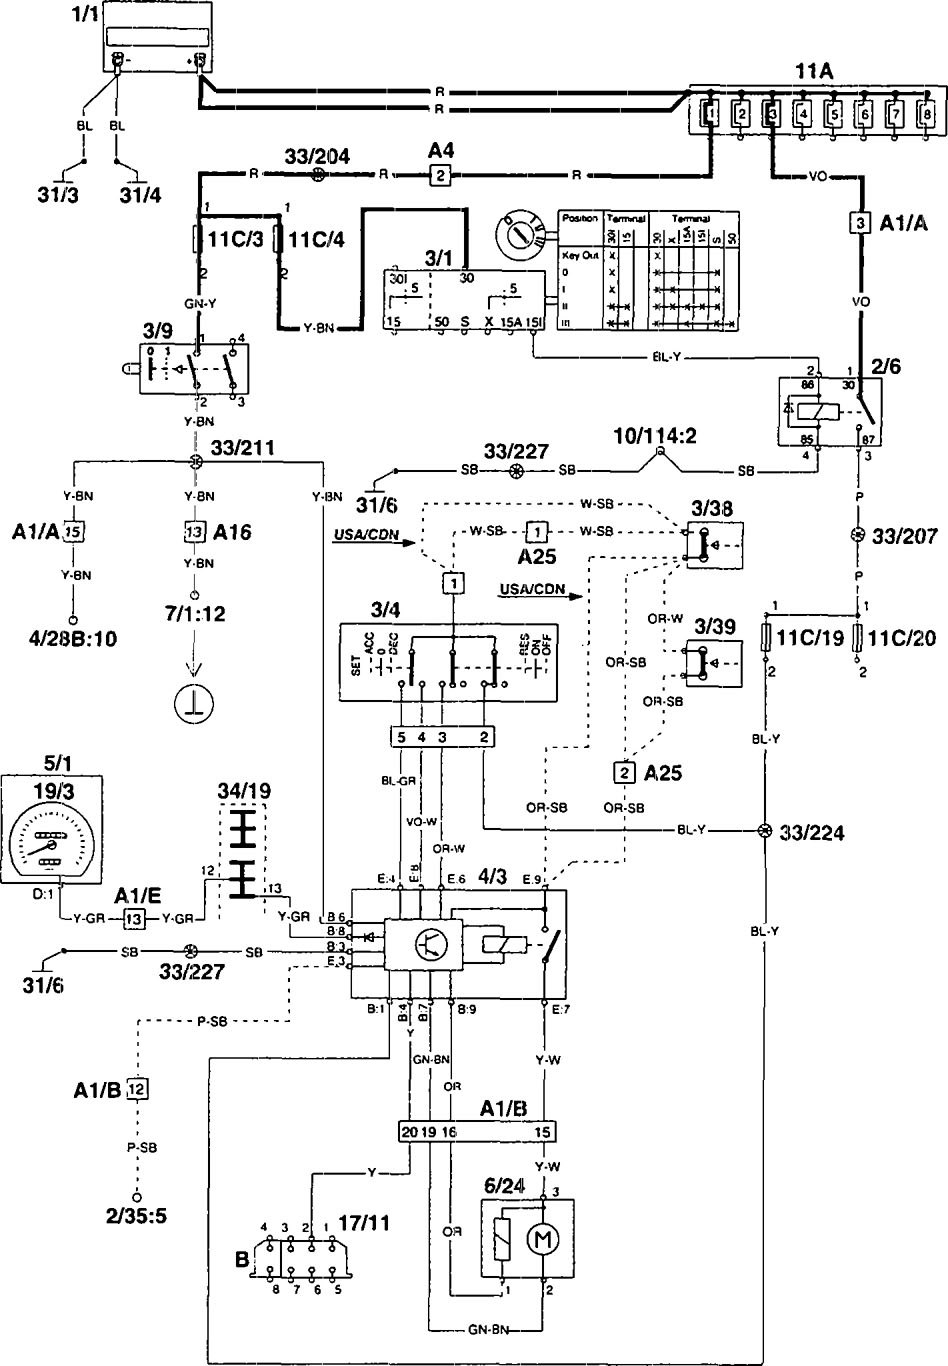 Volvo 960 (1995) - wiring diagrams - speed controls - Carknowledge.info | Volvo A25c Wiring Diagram |  | Carknowledge.info